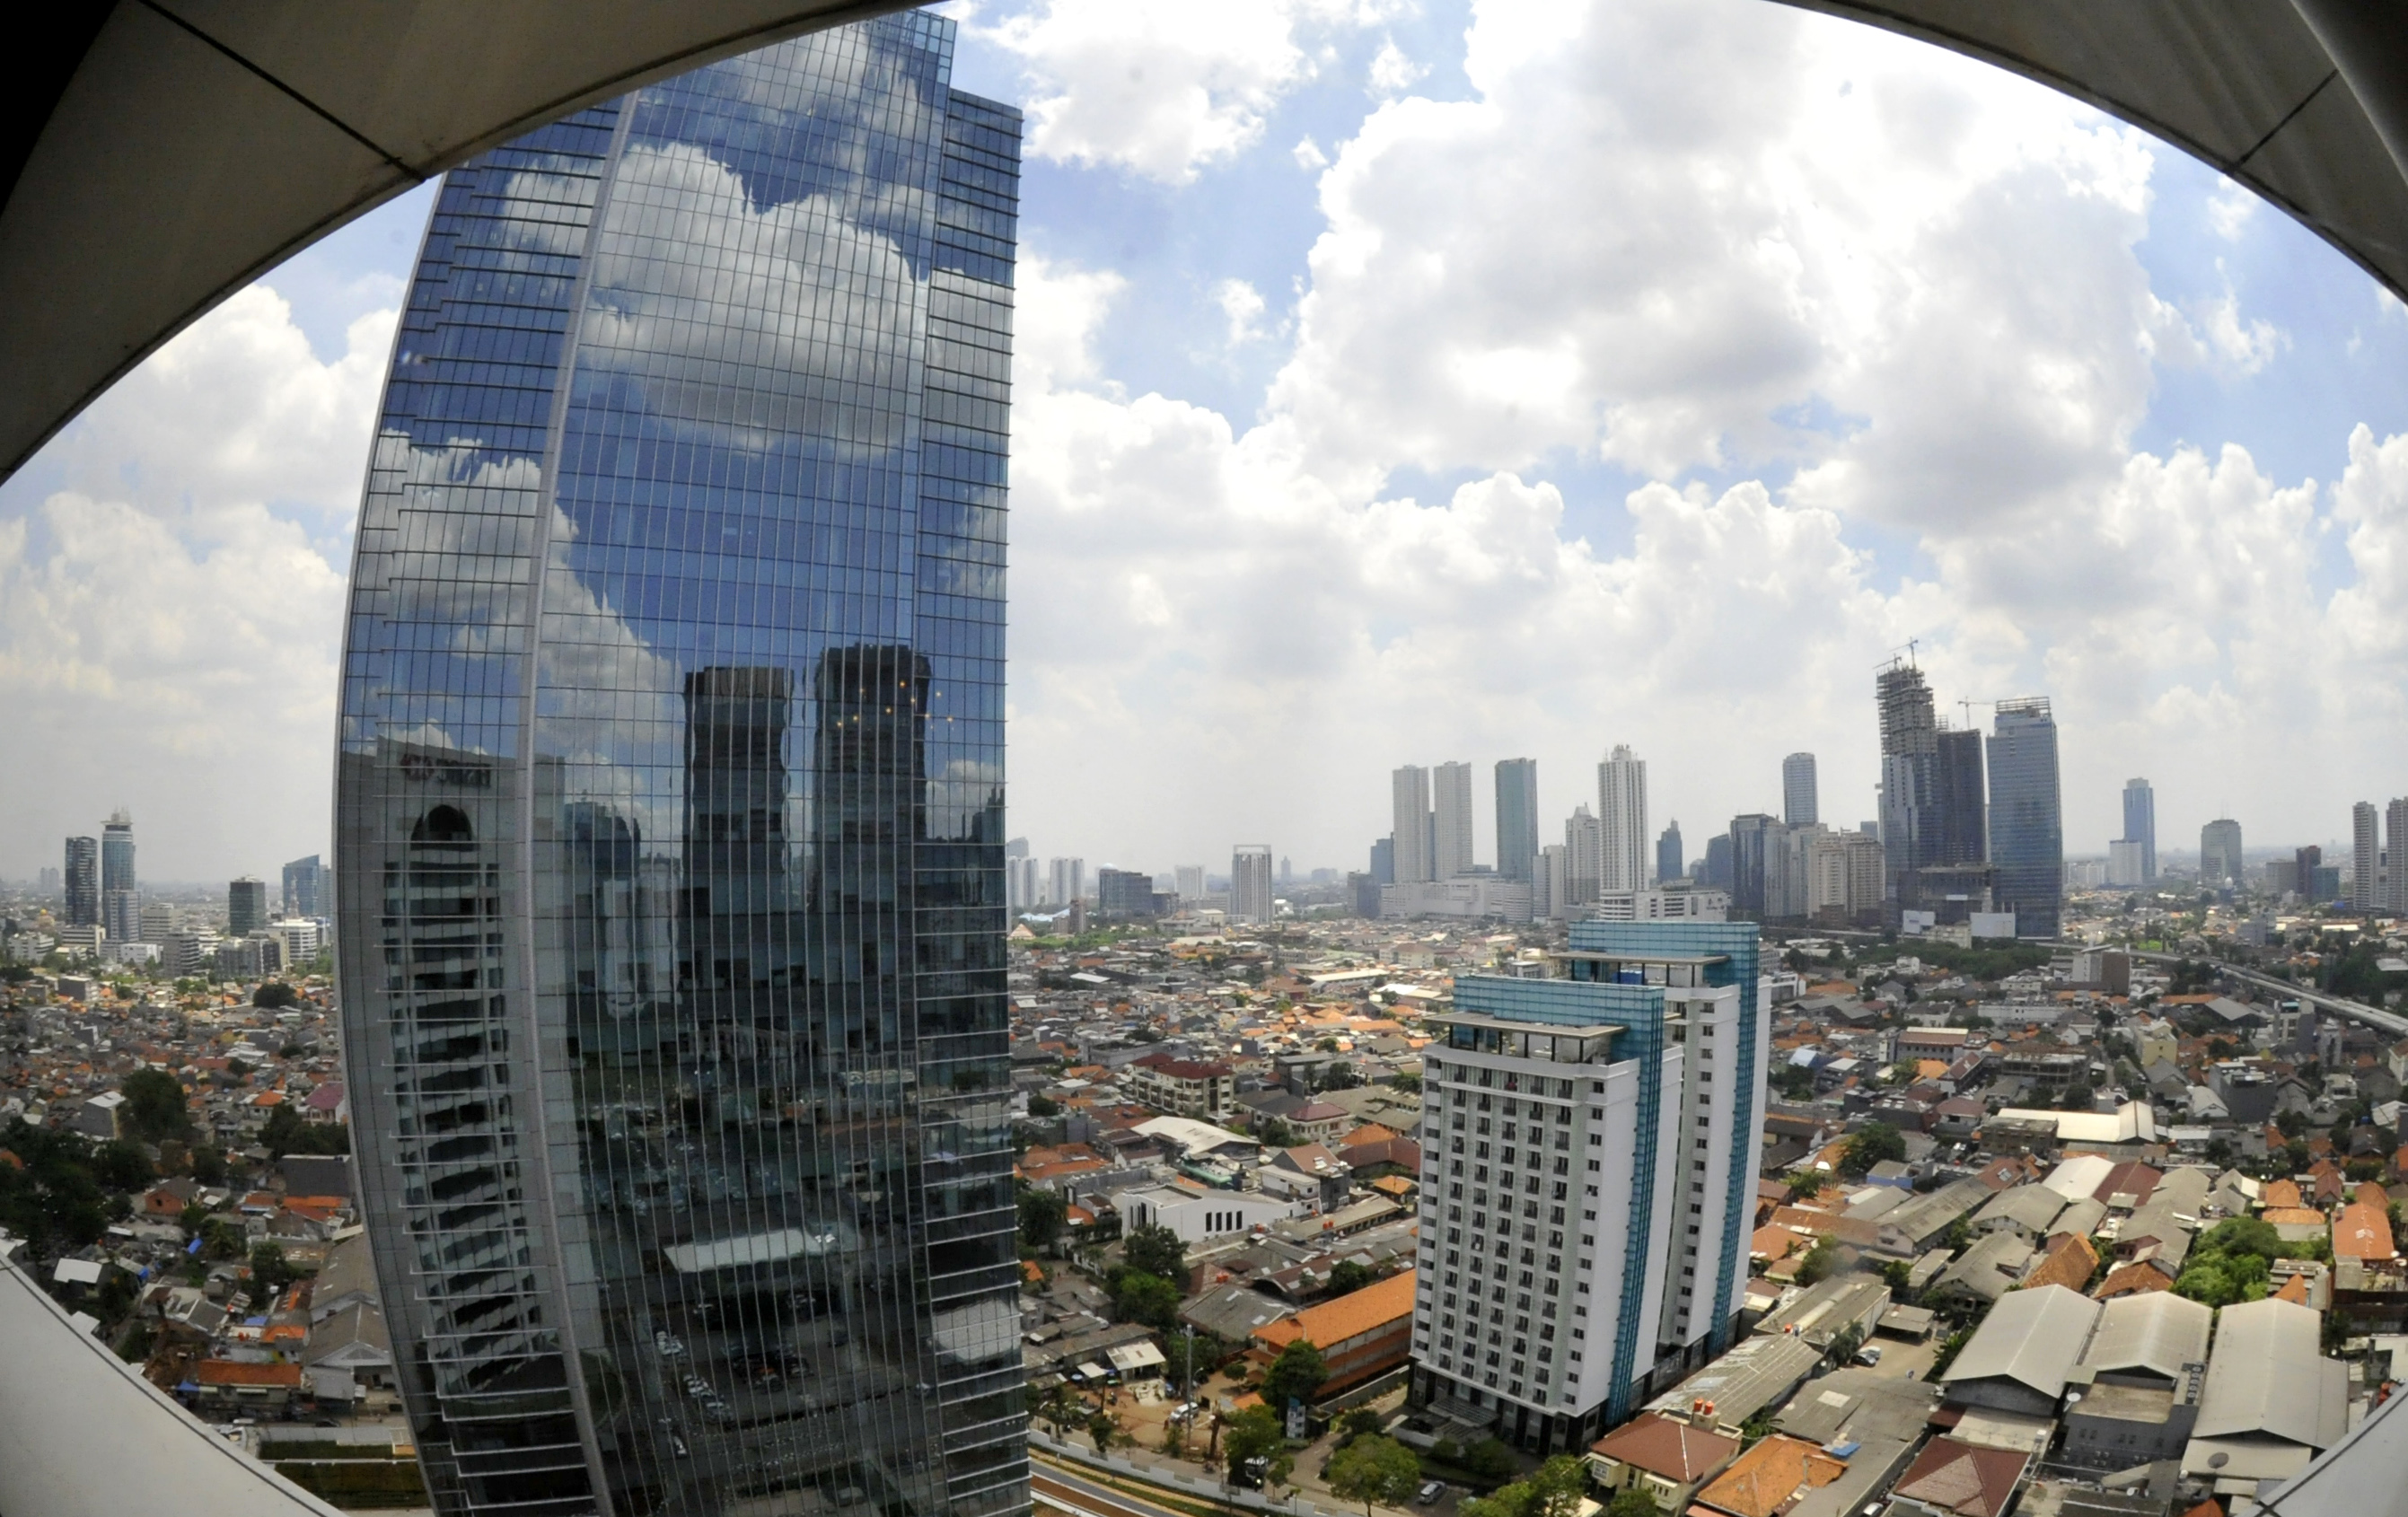 JCR Raises Indonesia's Credit Rating to BBB